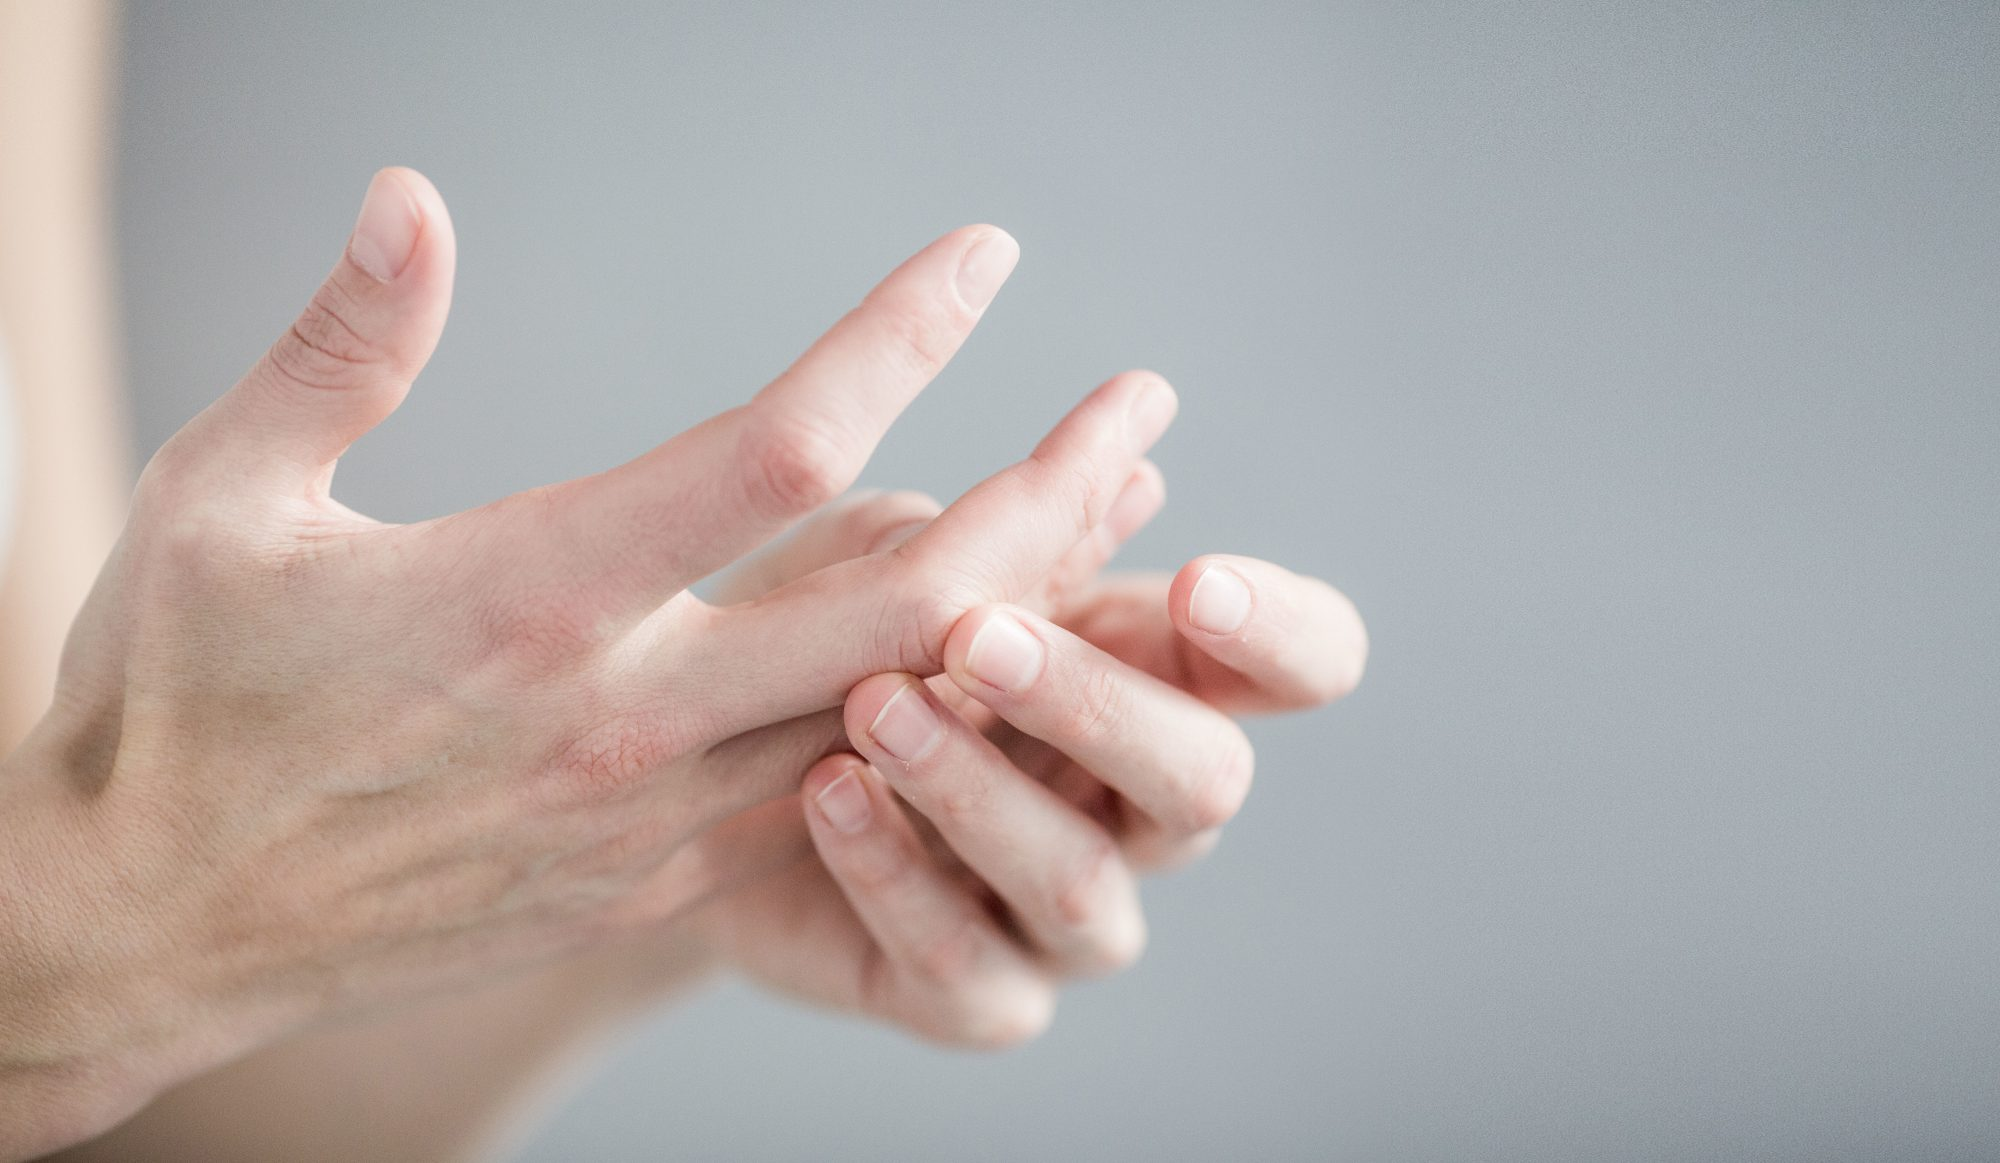 Achy Hands Knuckle Replacement May Be An Option Health